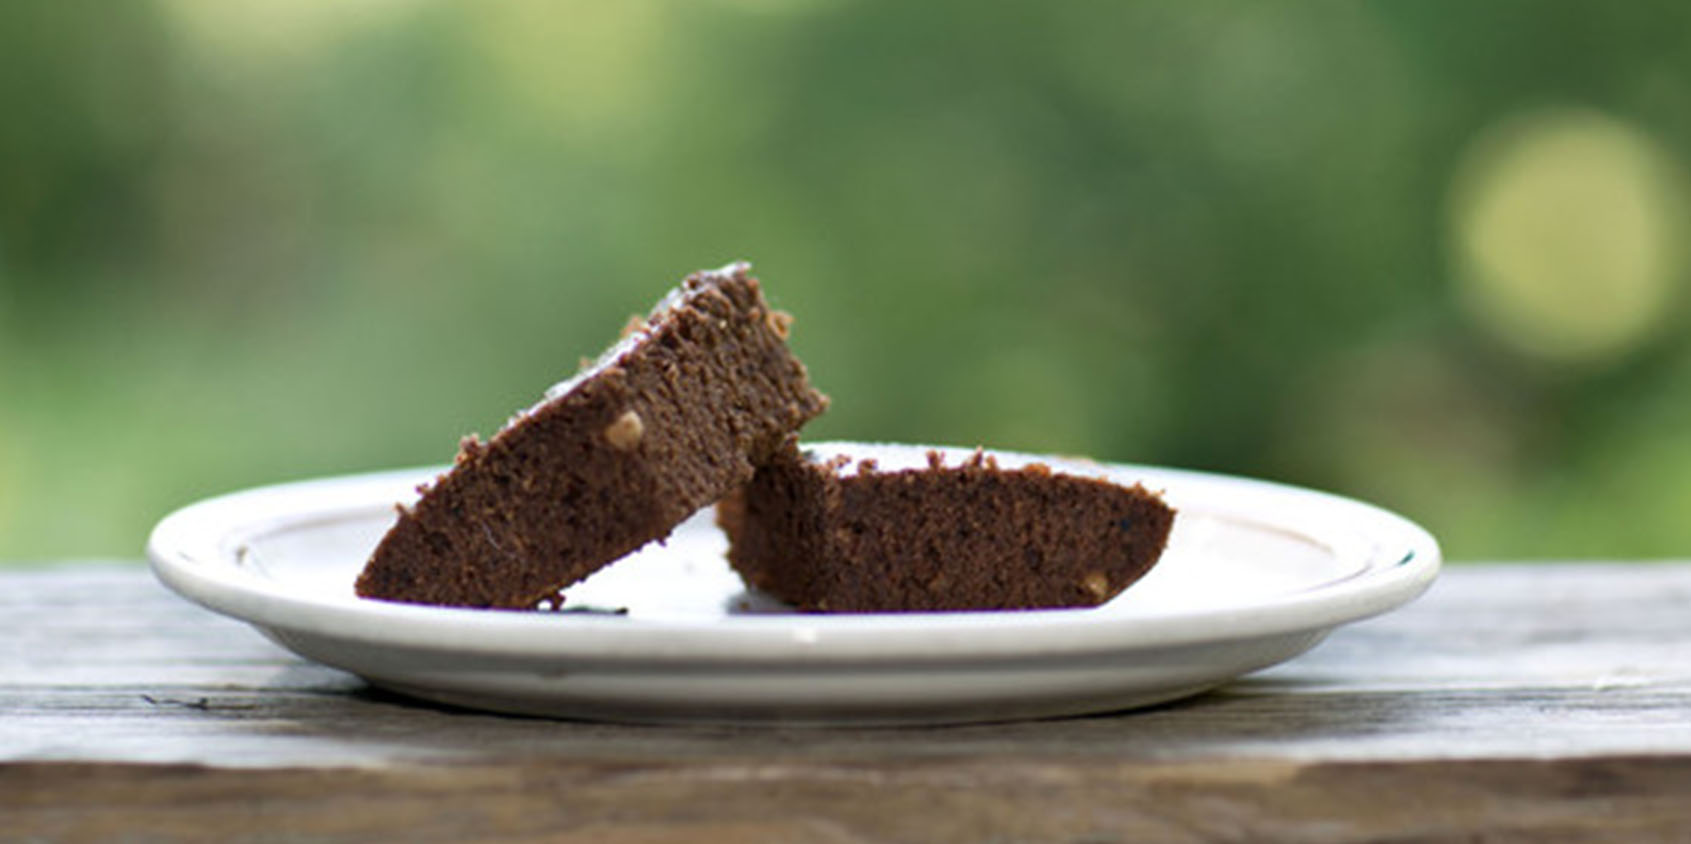 Load up on guilt-free chocolate cake for recovery. (spartan.com)